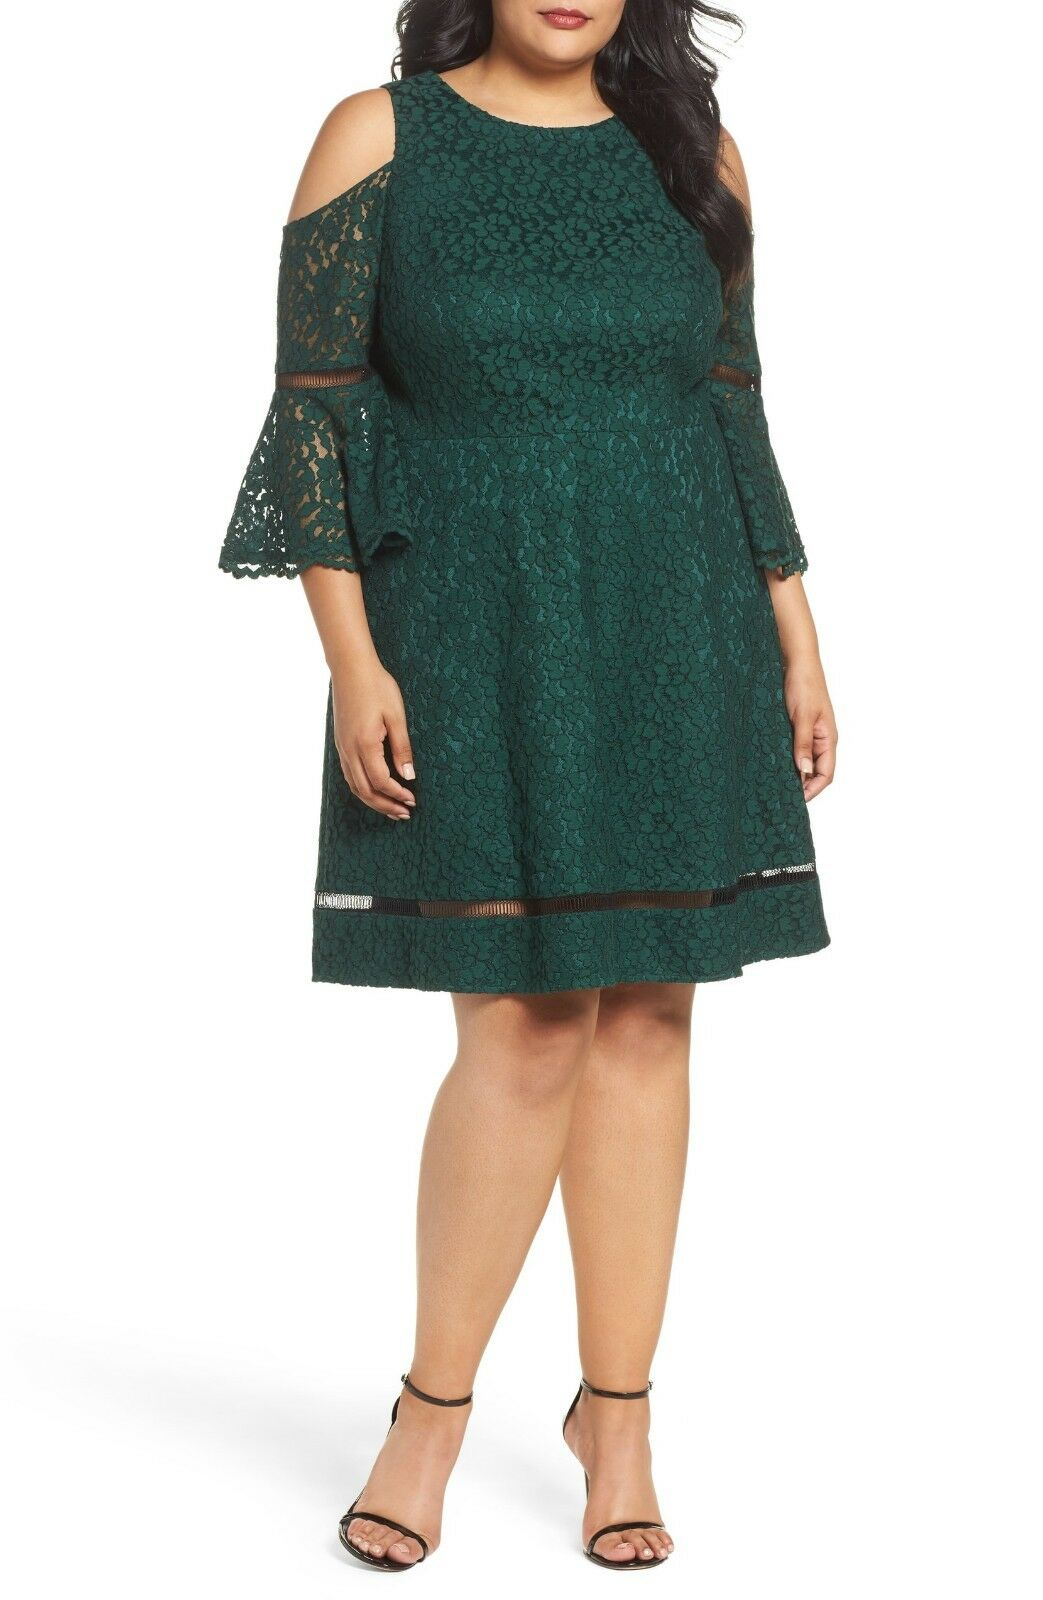 6eb018c3f43d6 New ELIZA J Cold Shoulder Bell Sleeve Lace Dress Emerald Green Size 18 W